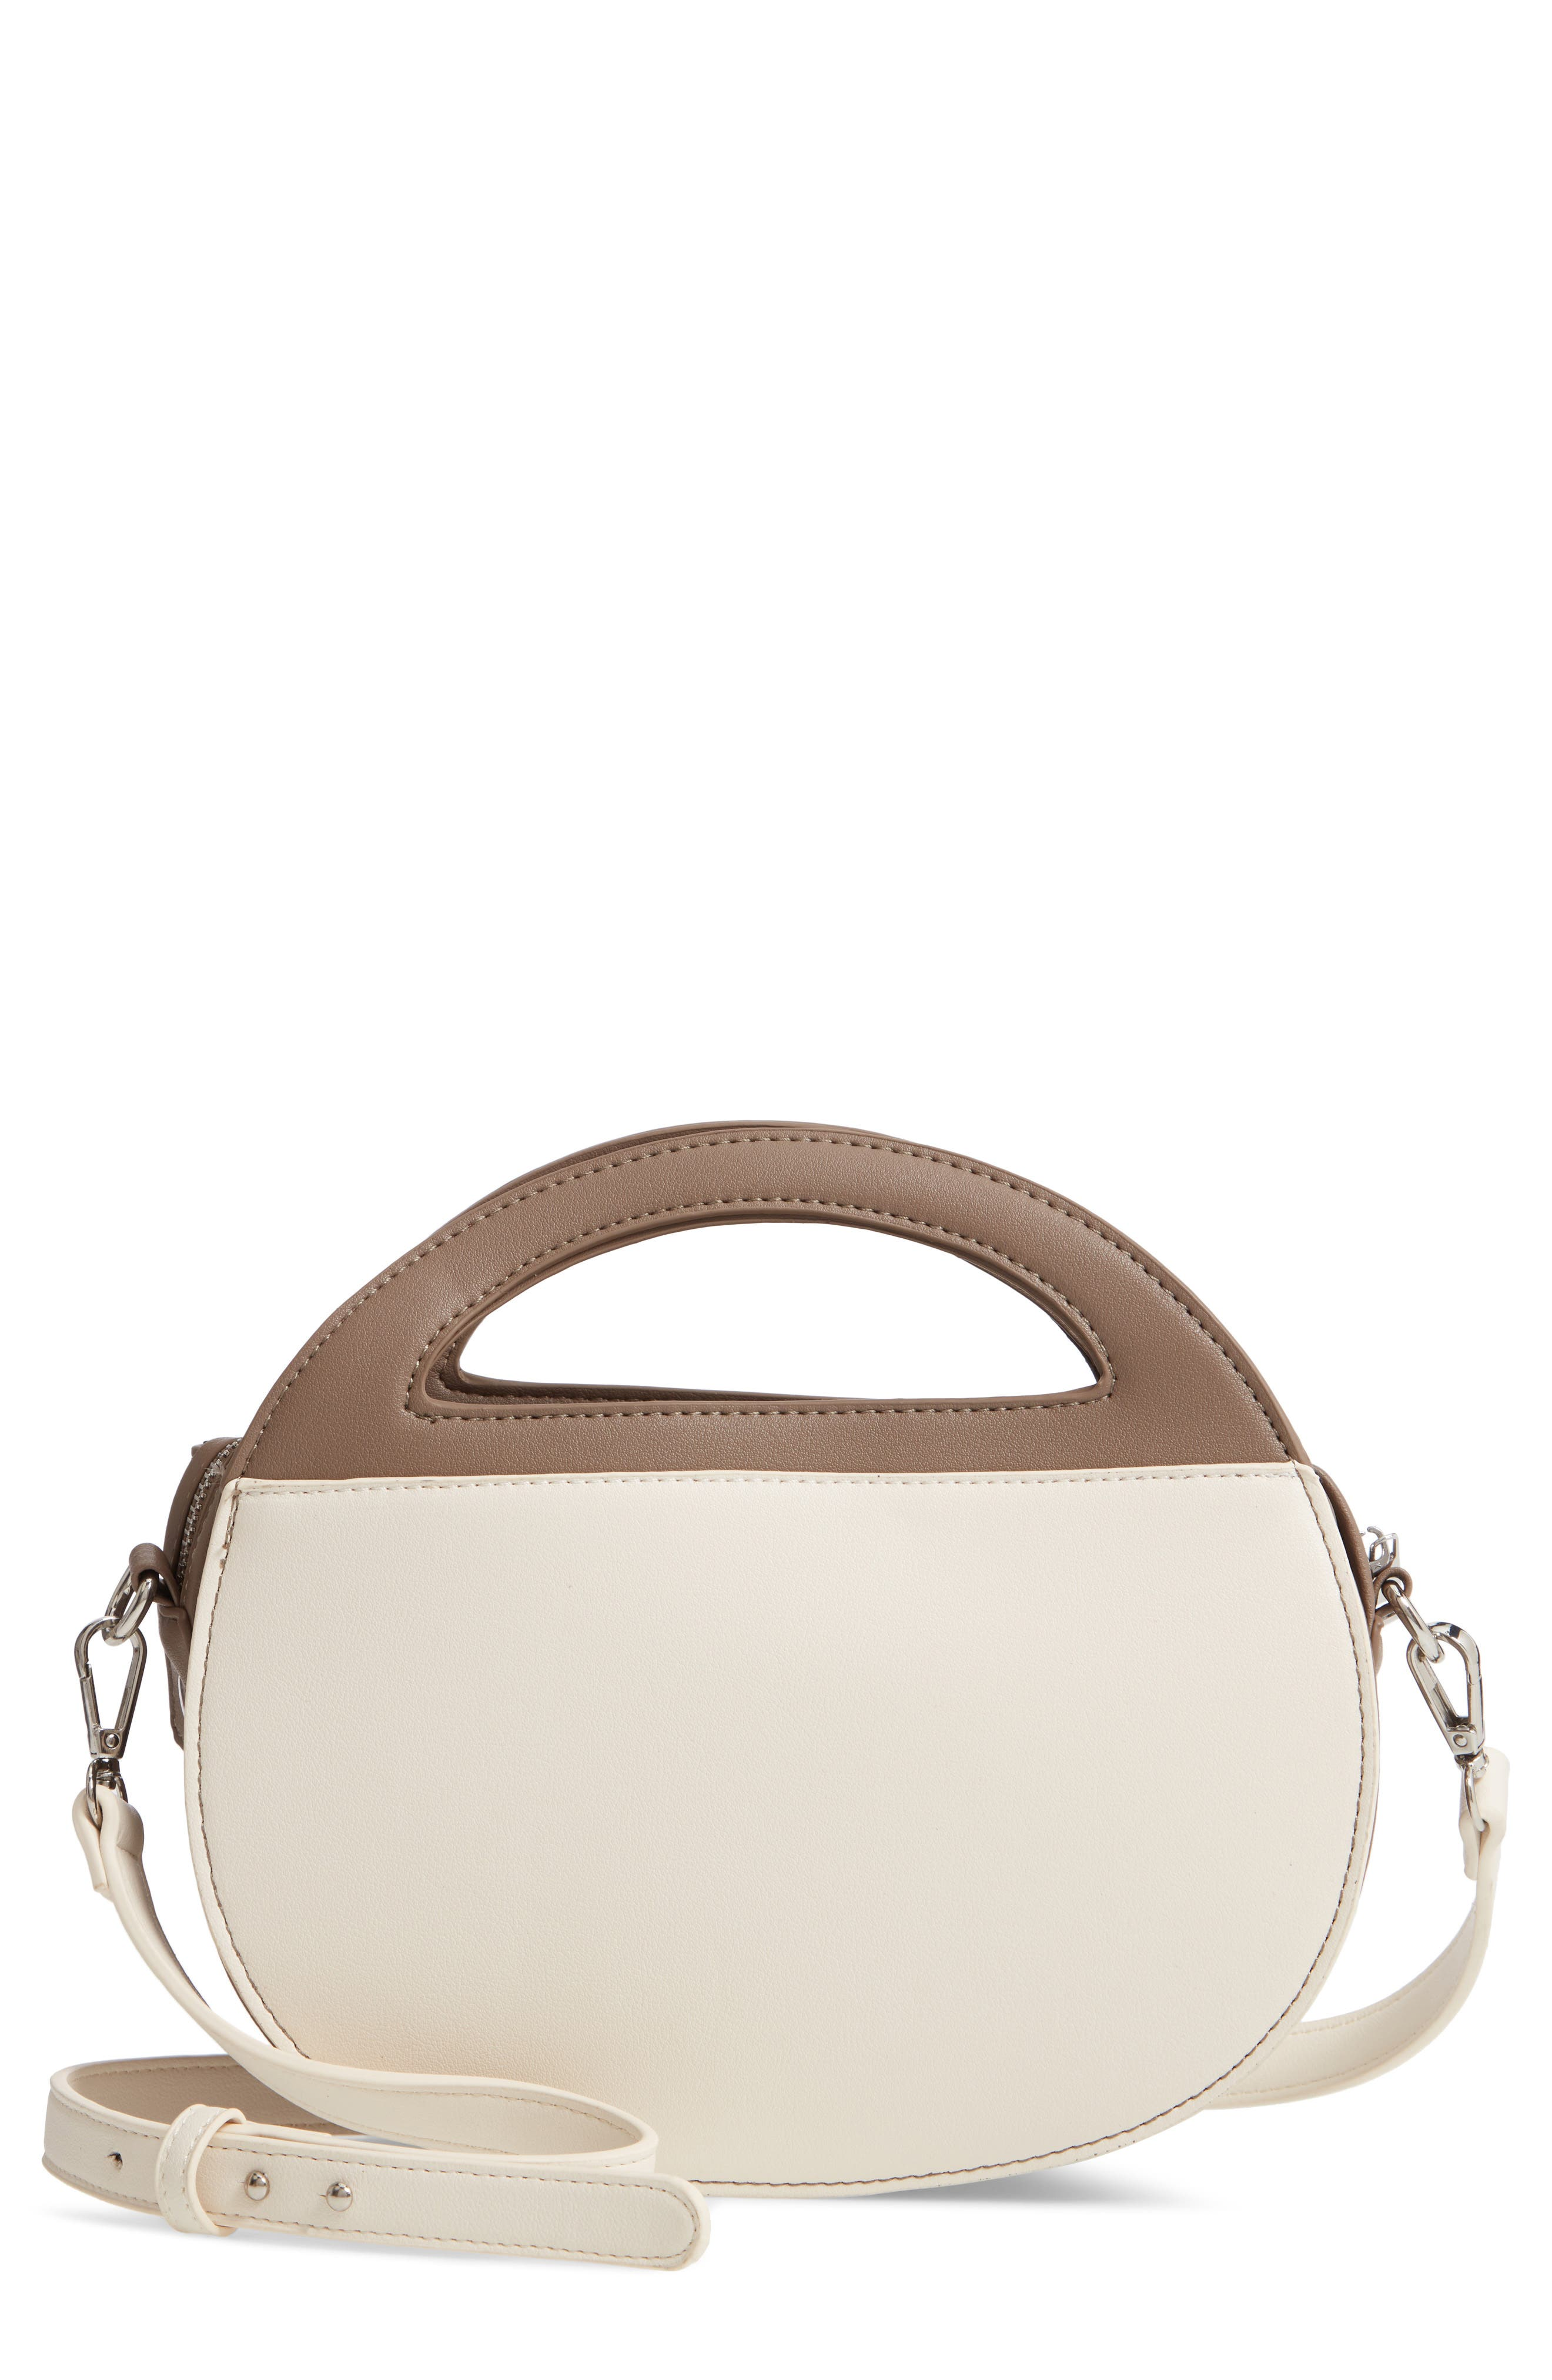 Two-Tone Faux Leather Oval Crossbody Bag,                         Main,                         color, TAUPE/ COGNAC